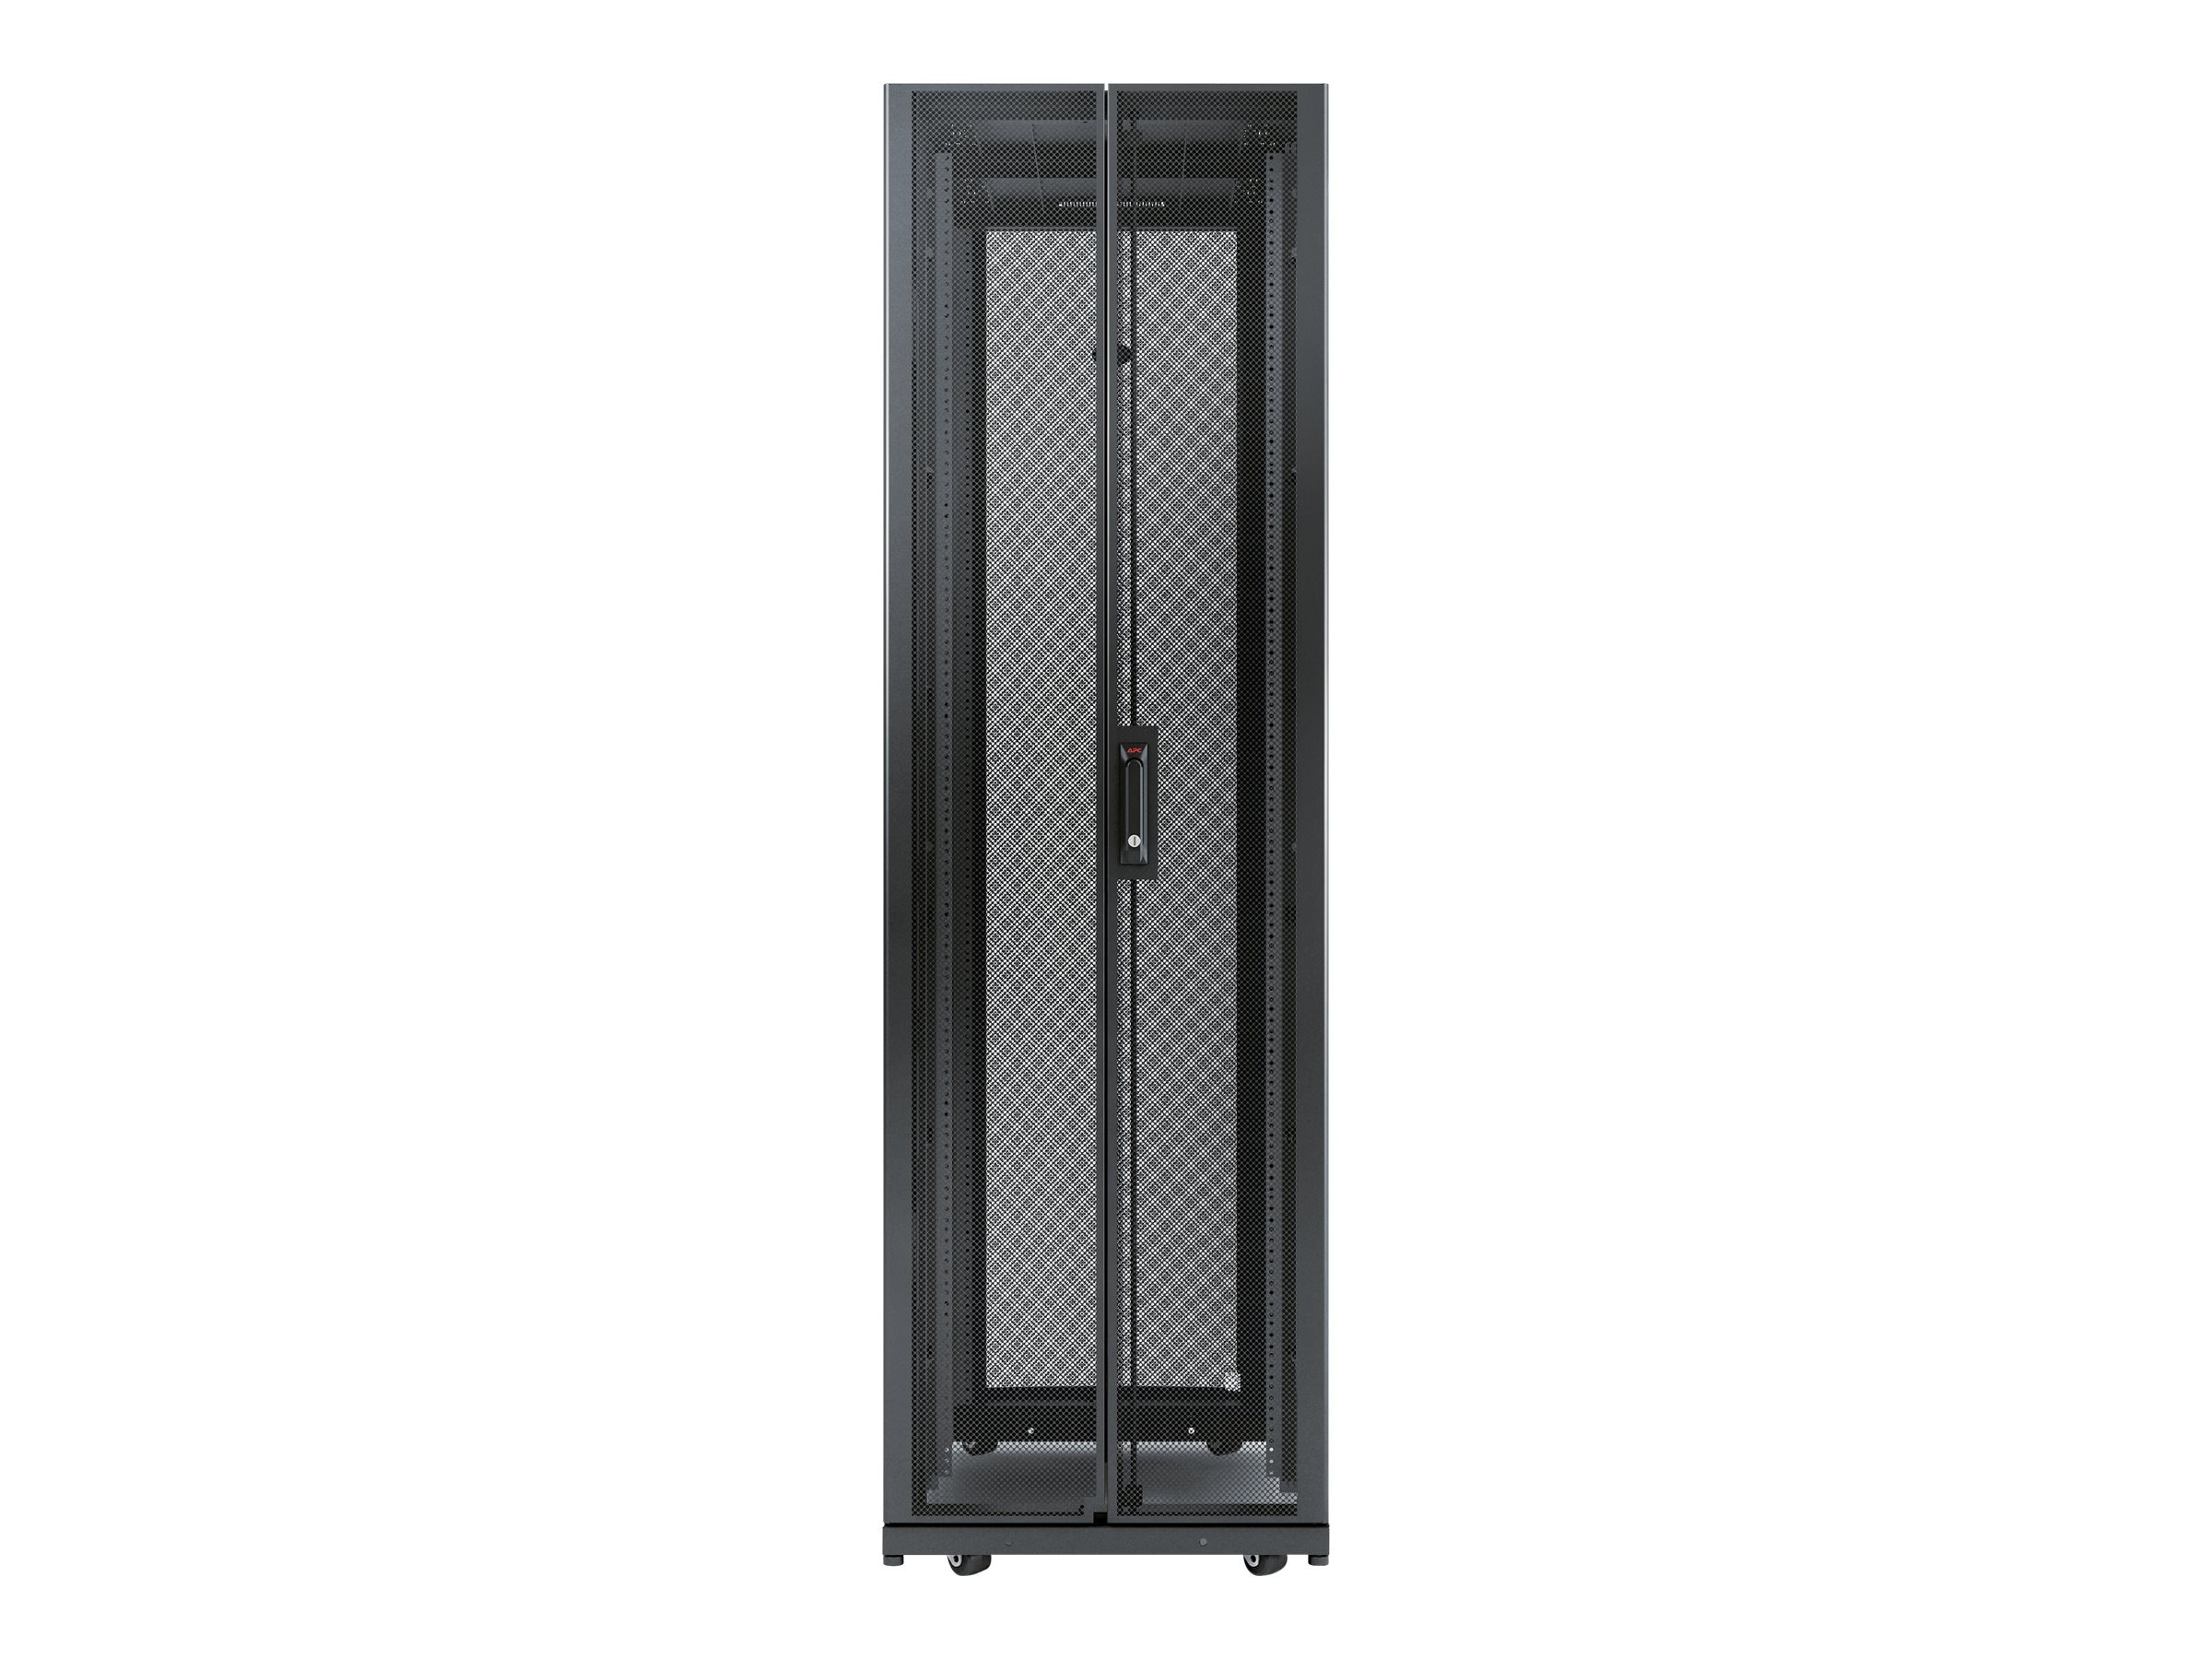 APC NetShelter AV 42U 600mm Wide x 825 Deep Enclosure with Sides and 10-32 Threaded Rails, Black, AR3810